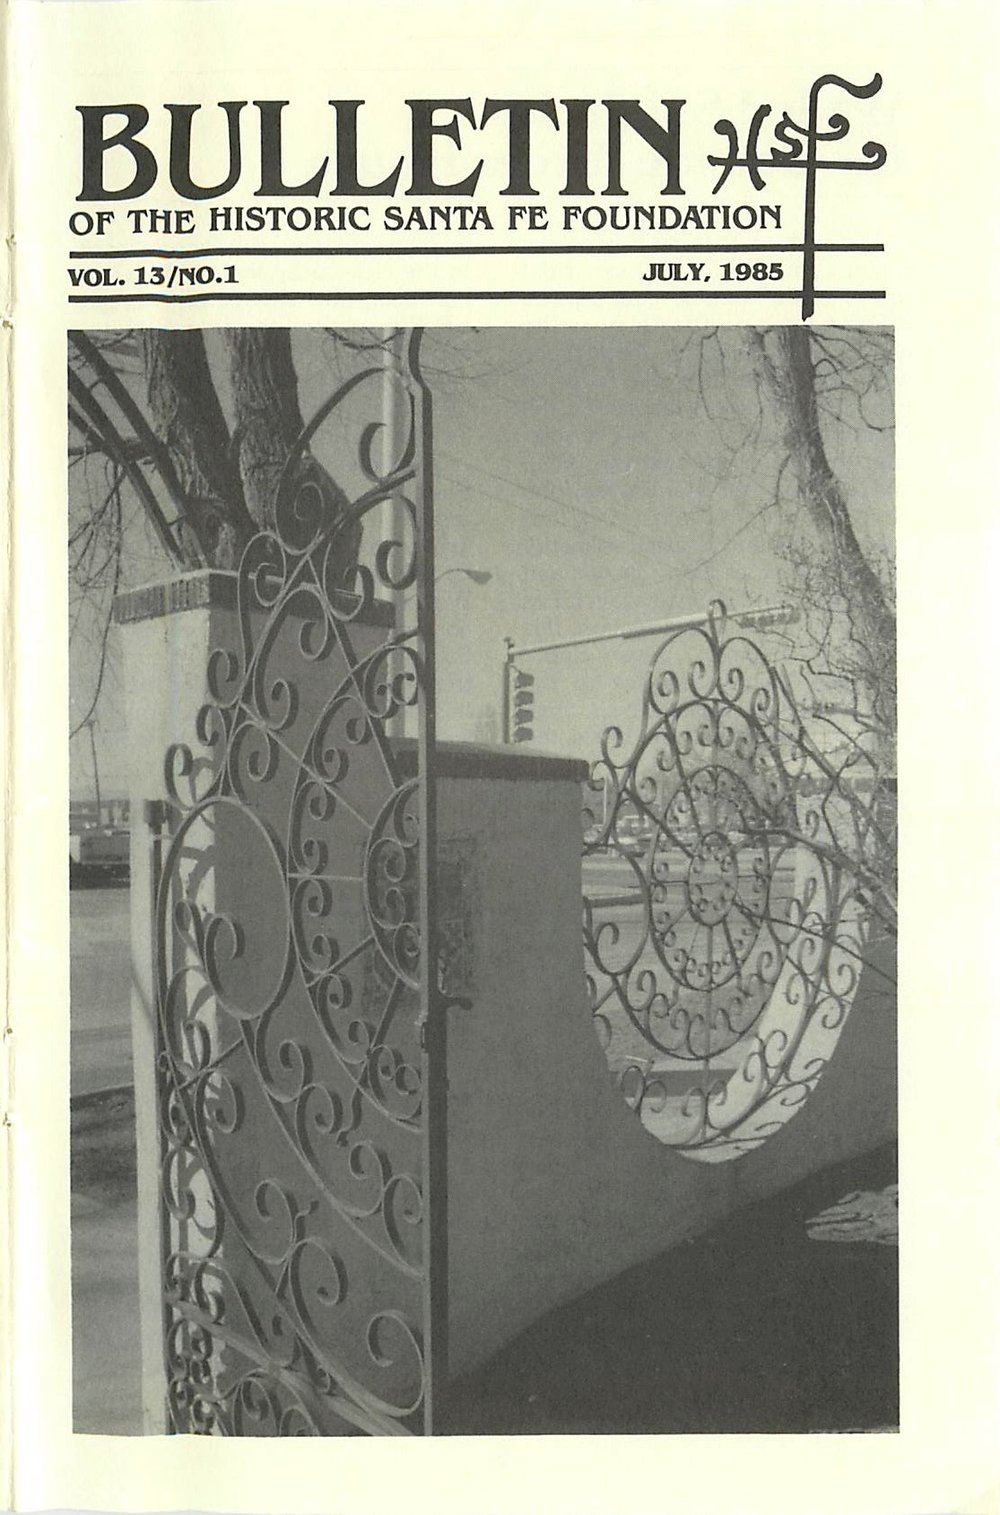 1985 HSFF Bulletin Vol.13 No.1 Cover